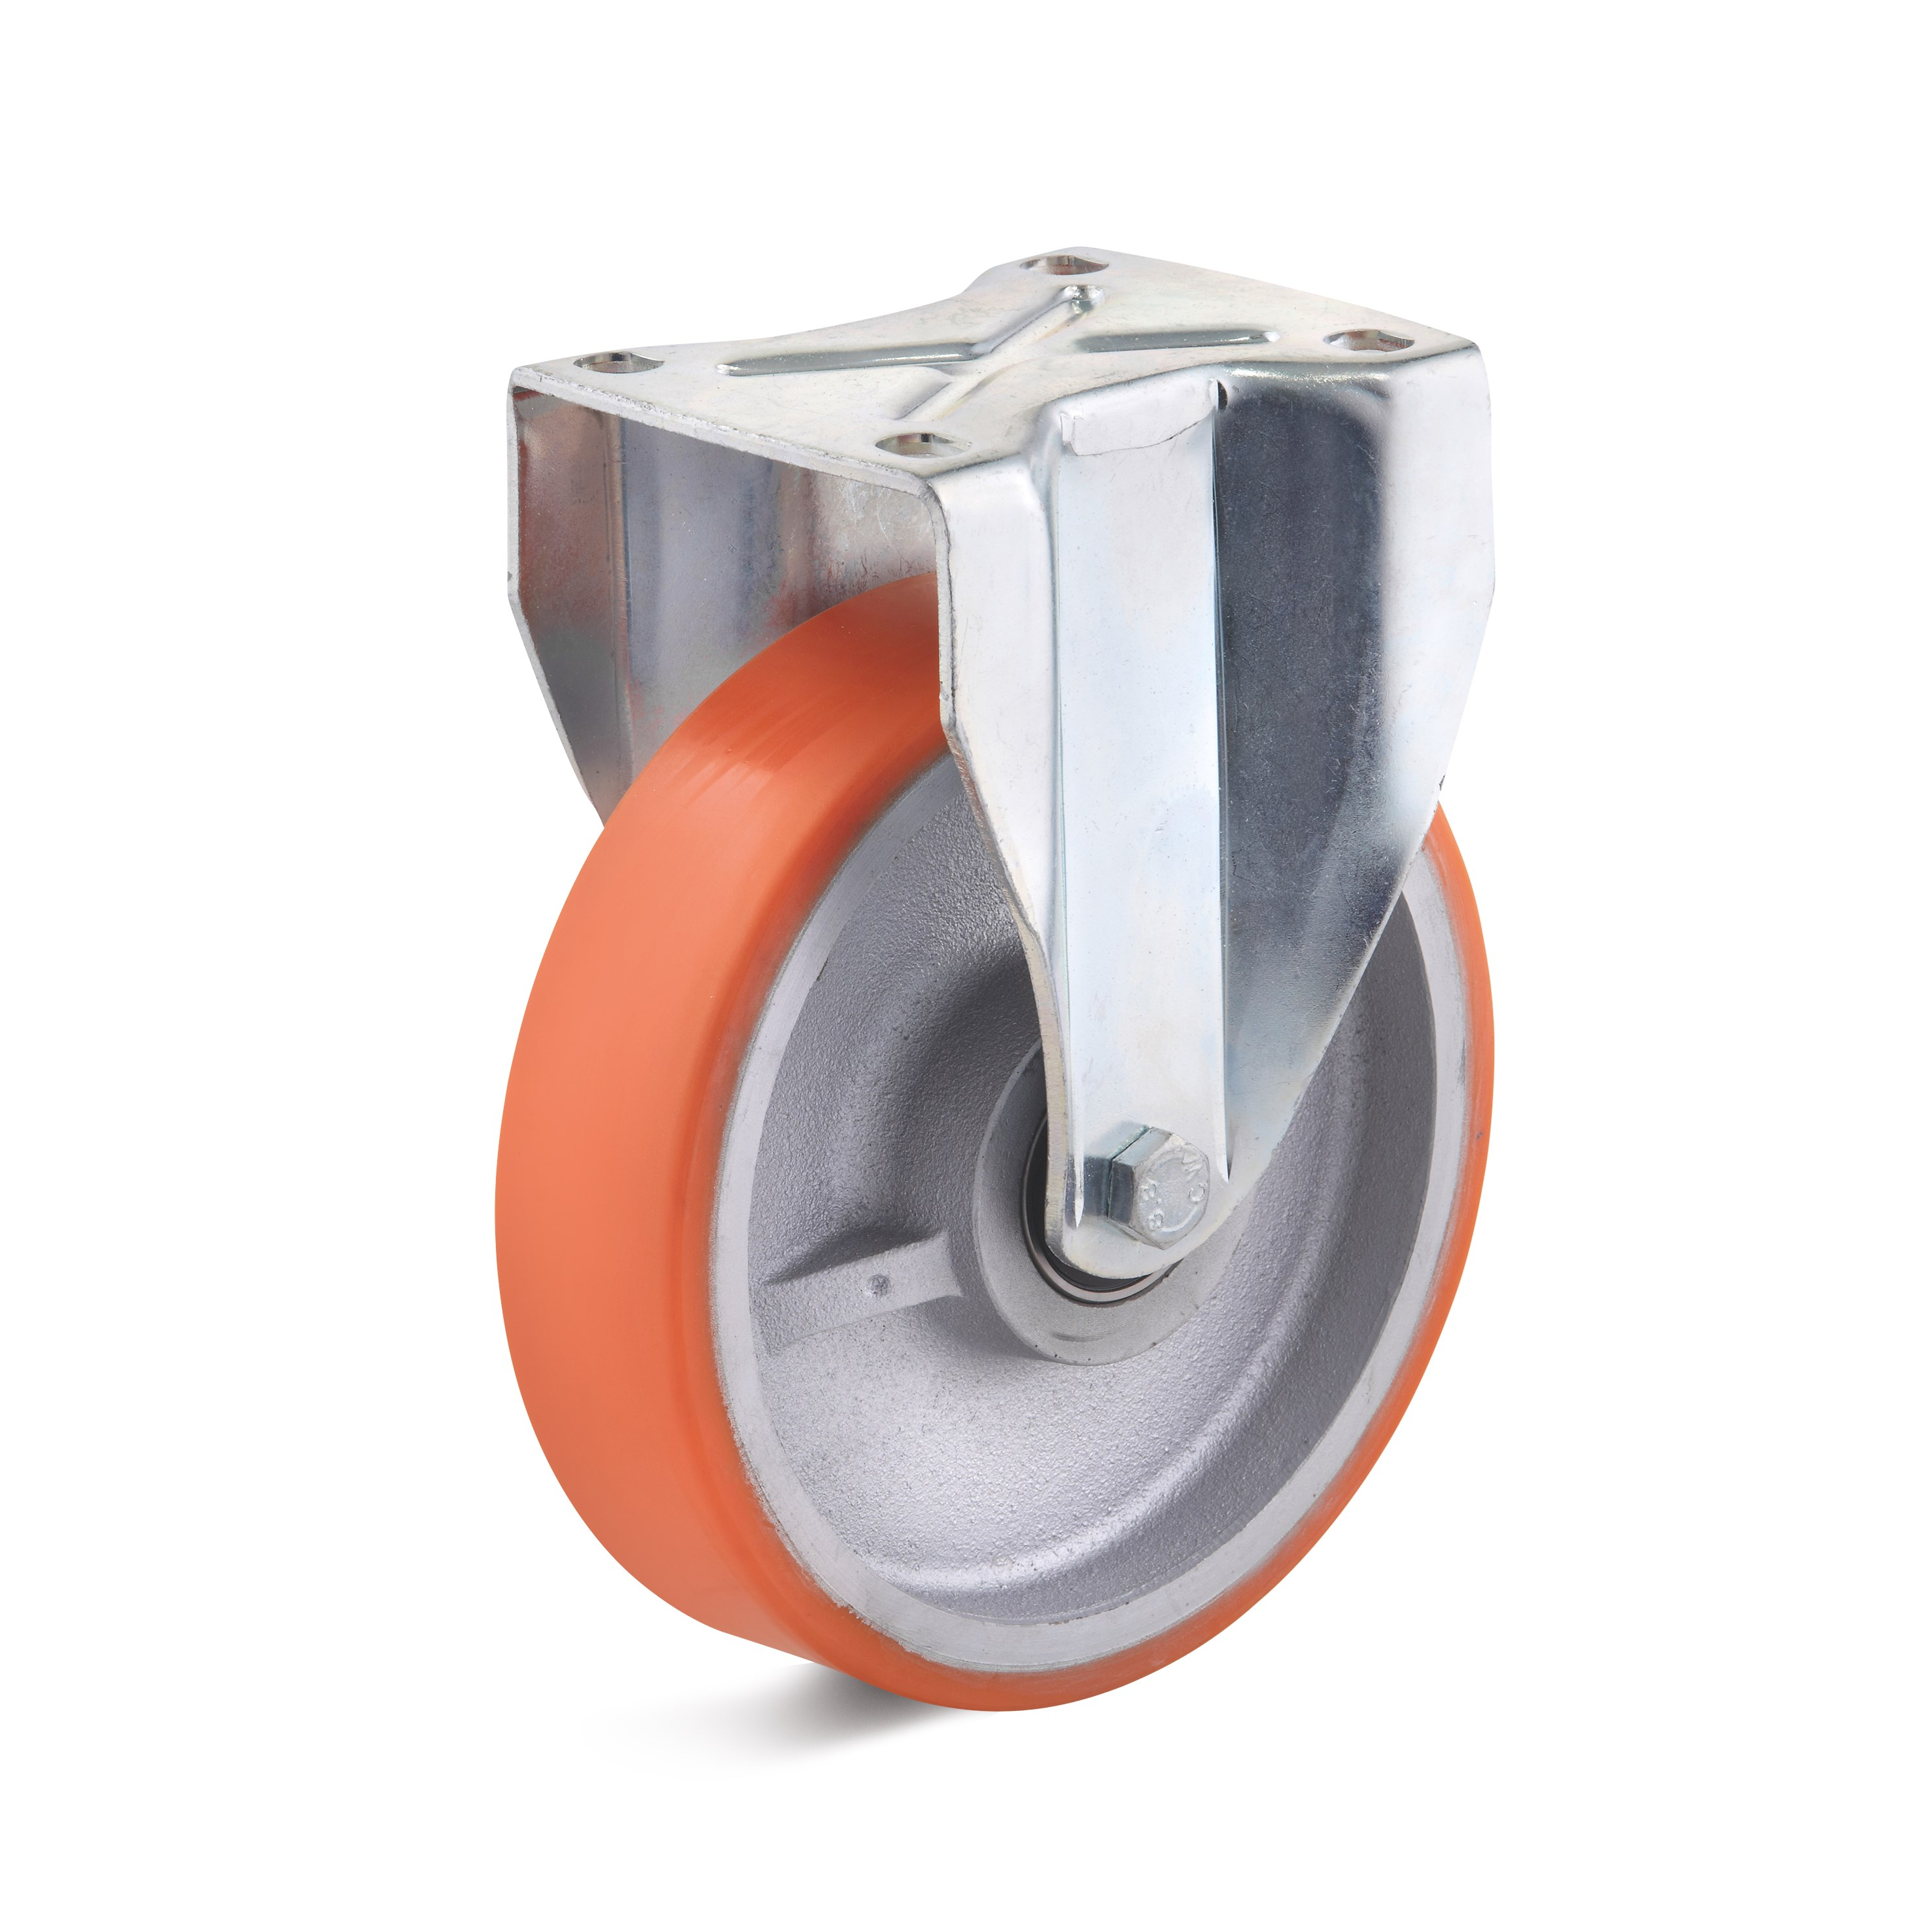 Heavy duty fixed castor with polyurethane wheel, housing made of welded steel construction